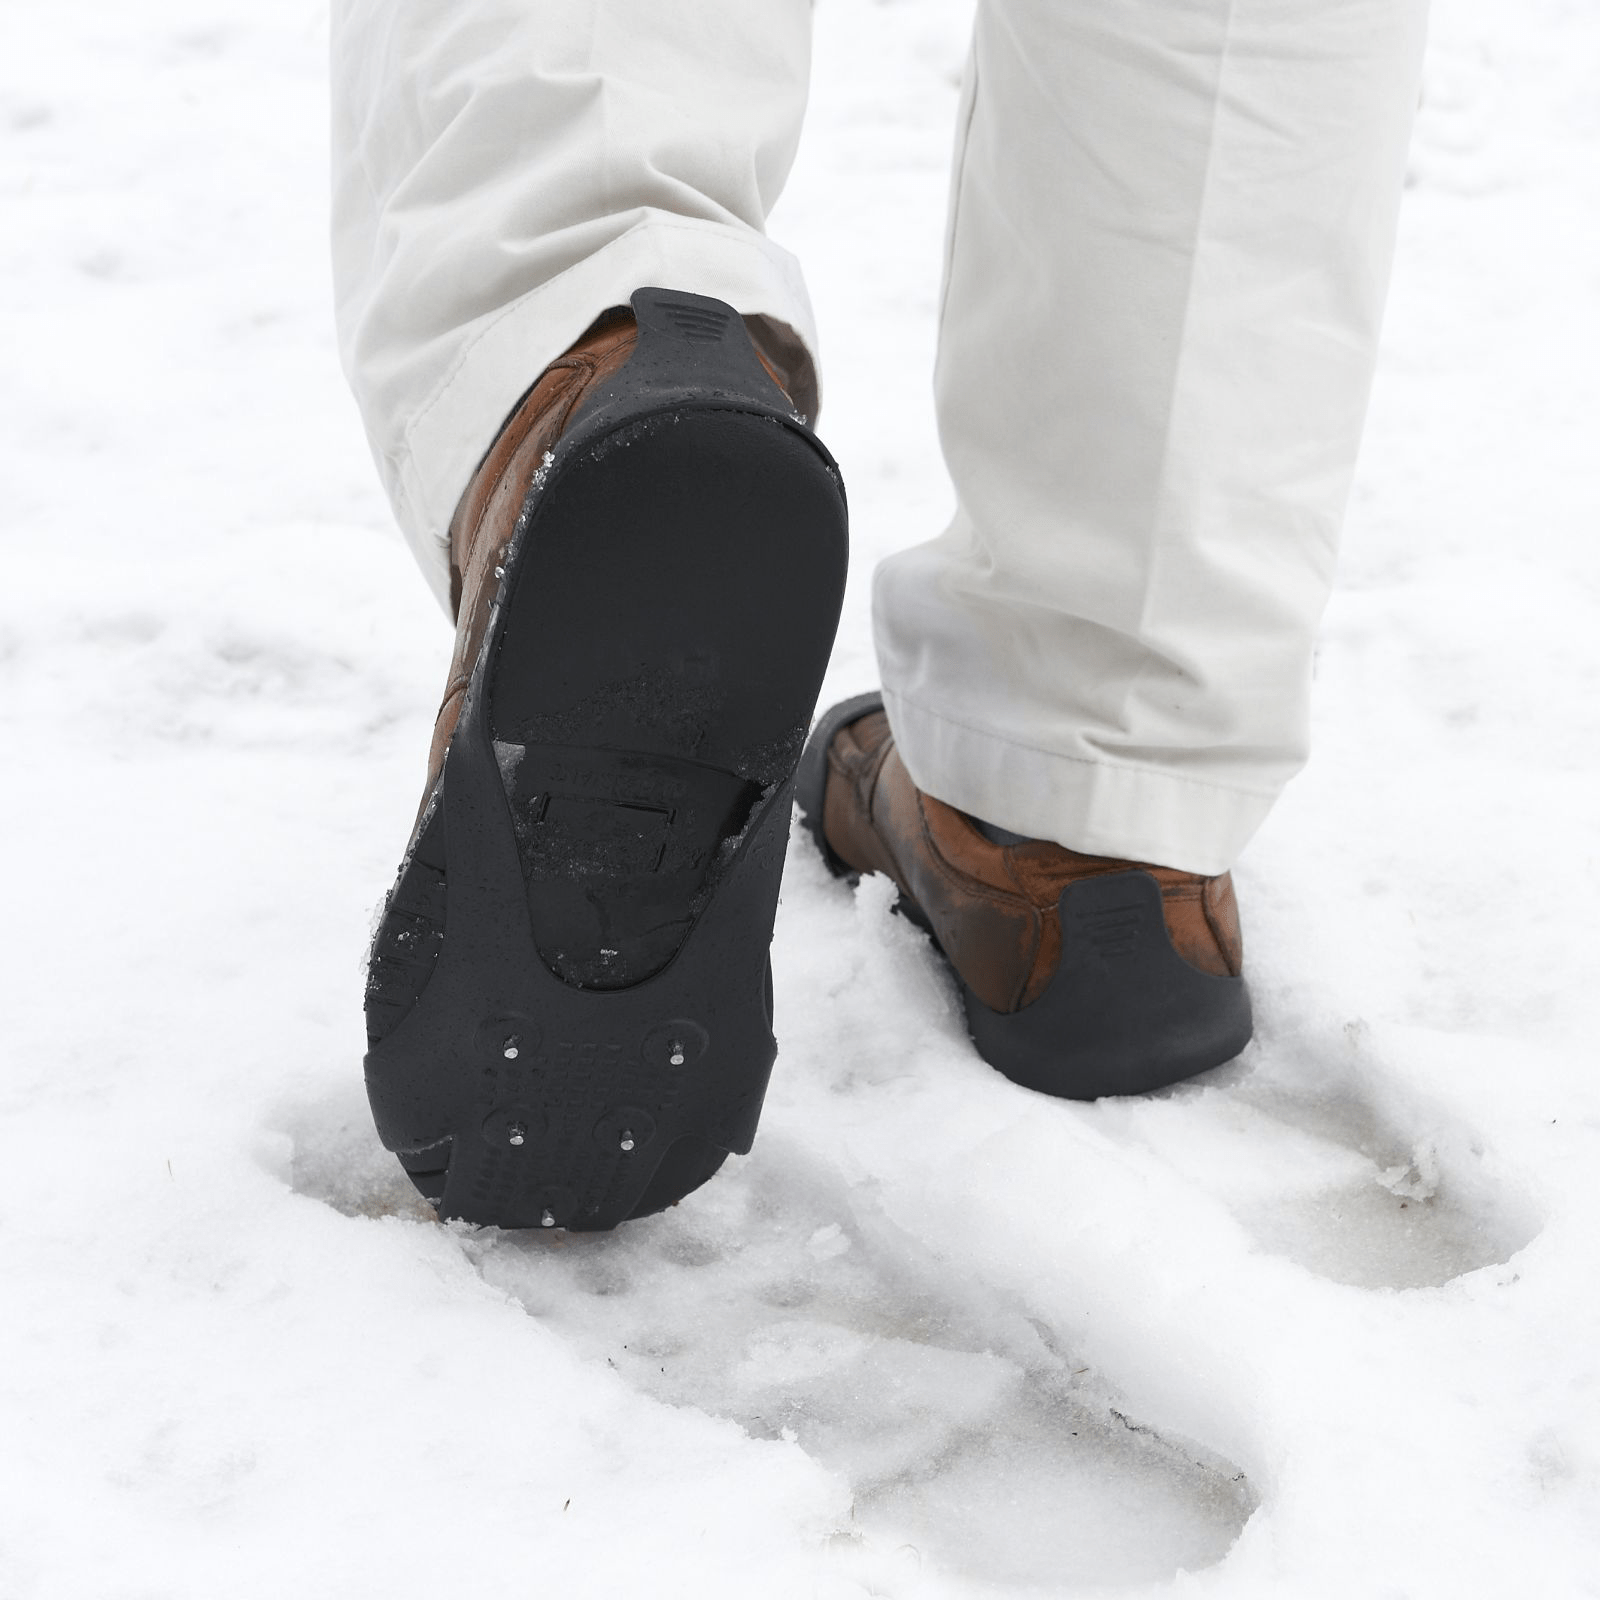 Bare Ground No Slip Ice Grip Shoes in Use